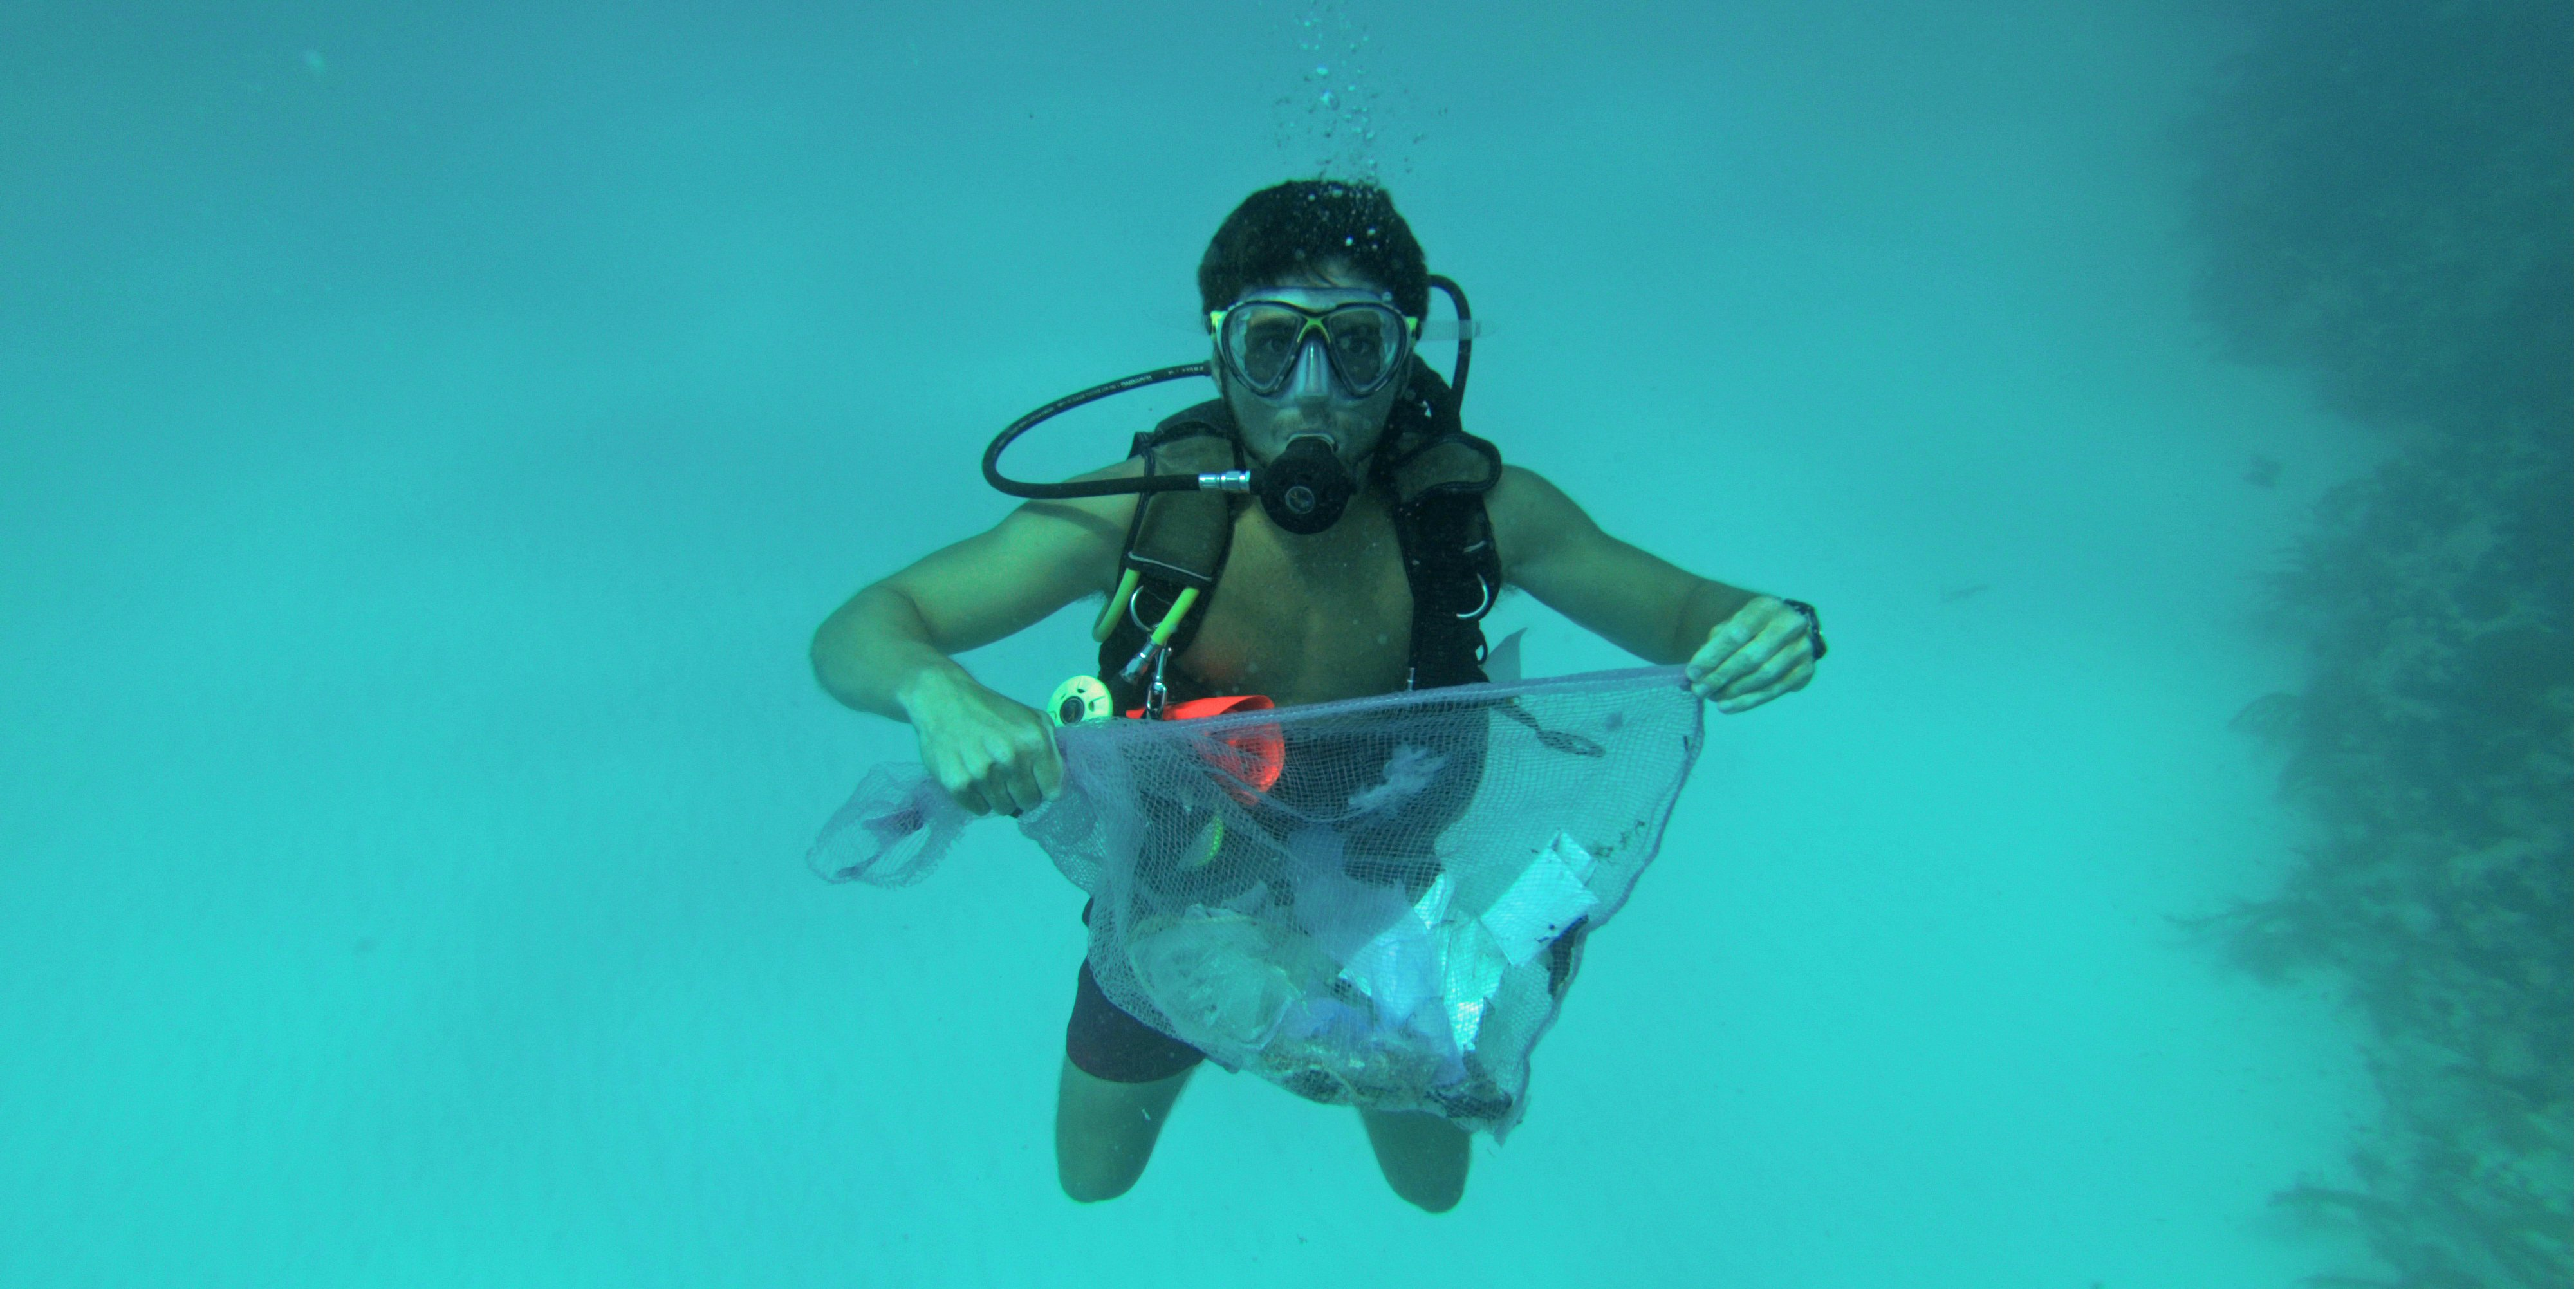 A GVI diving participant collects plastic waste while out on a dive. Removing plastic from fragile marine habitats is an important step in saving the oceans.